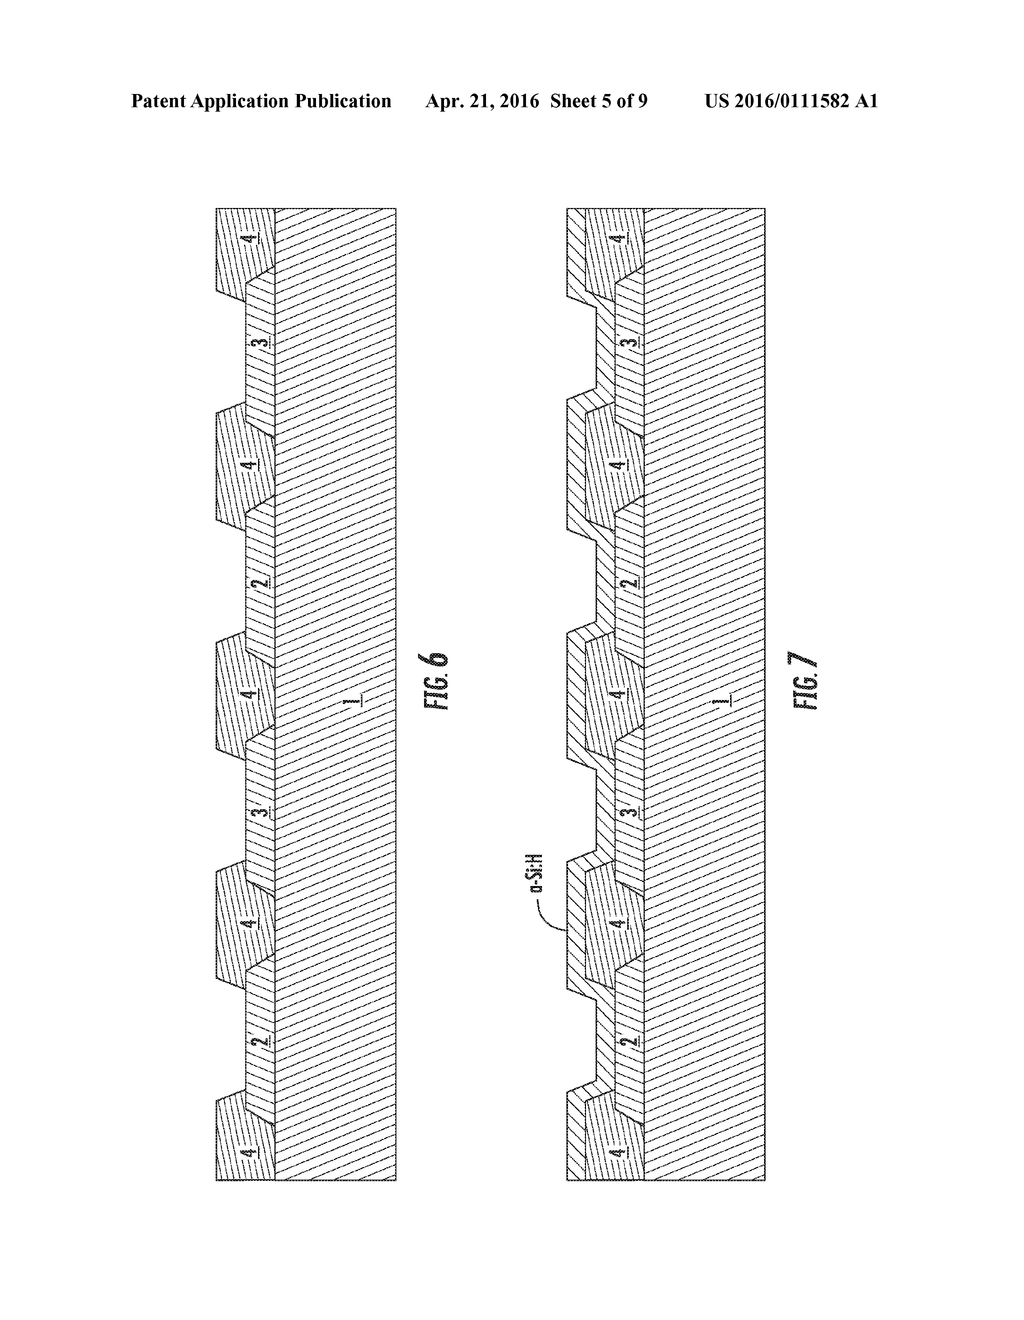 Modular Interdigitated Back Contact Photovoltaic Cell Structure On Diagram Of Opaque Substrate And Fabrication Process Schematic Image 06